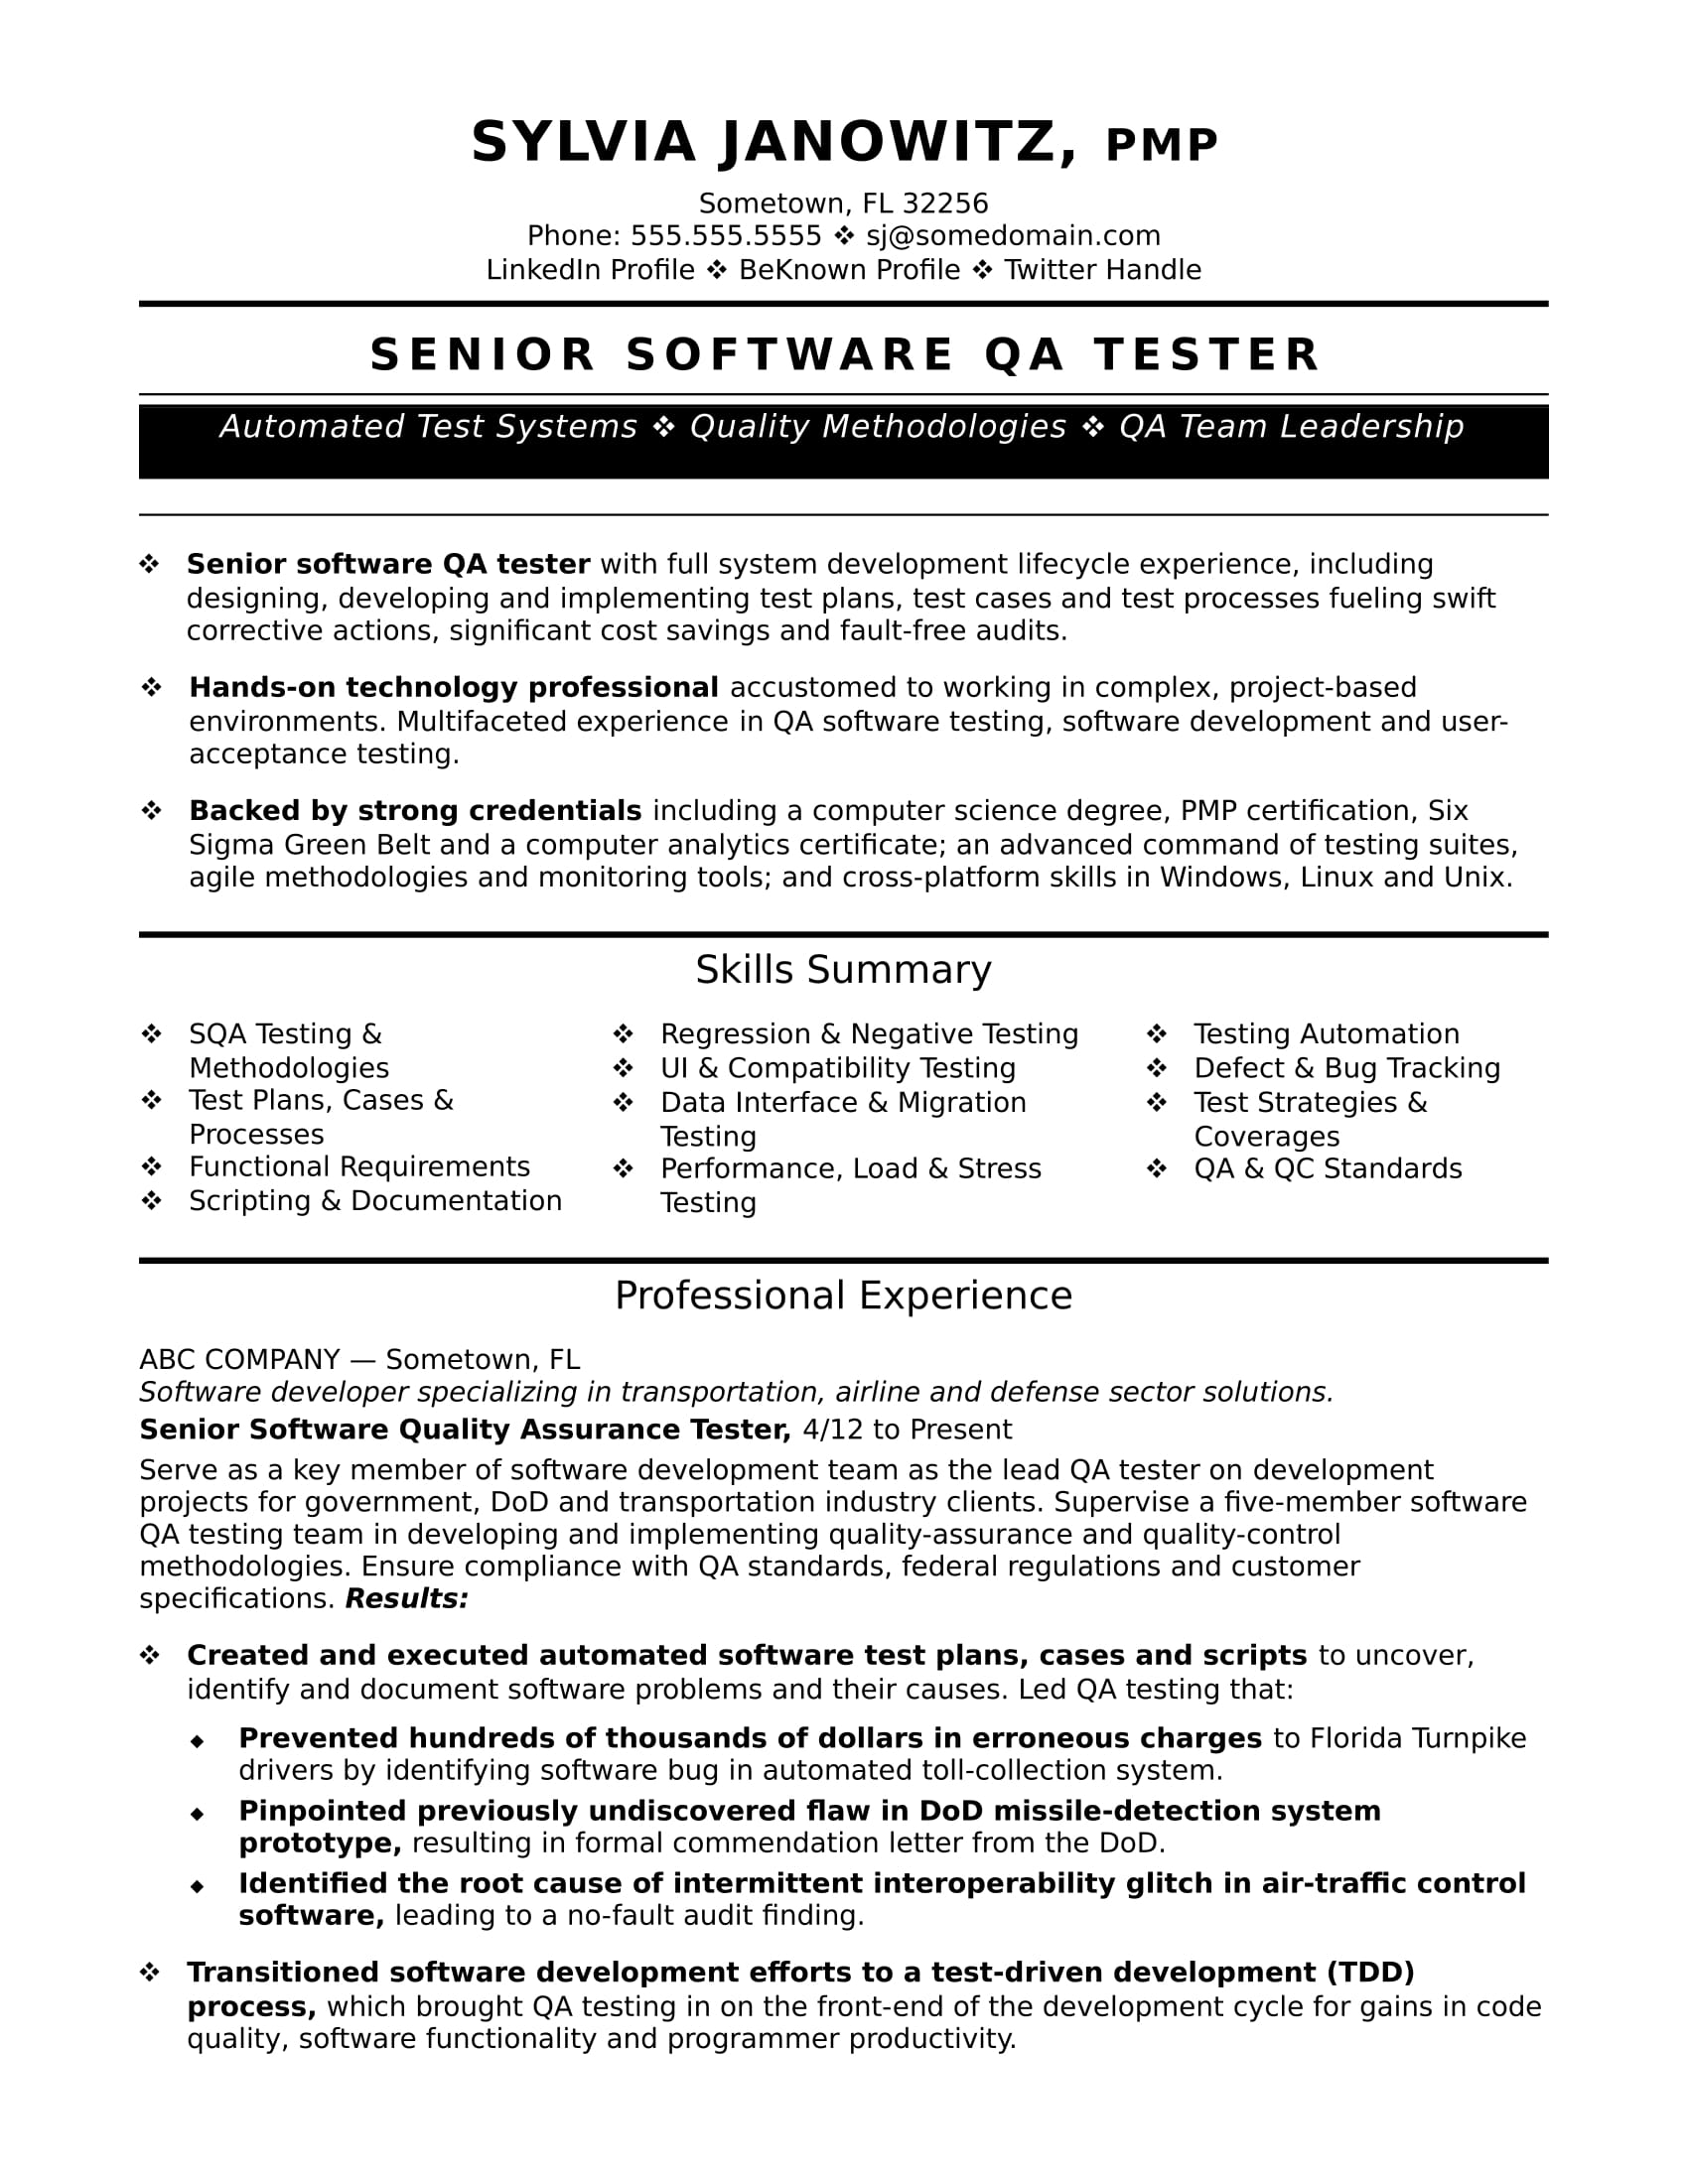 Software Testing Resume Format For 1 Year Experience Experienced Qa Software Tester Resume Sample Monster